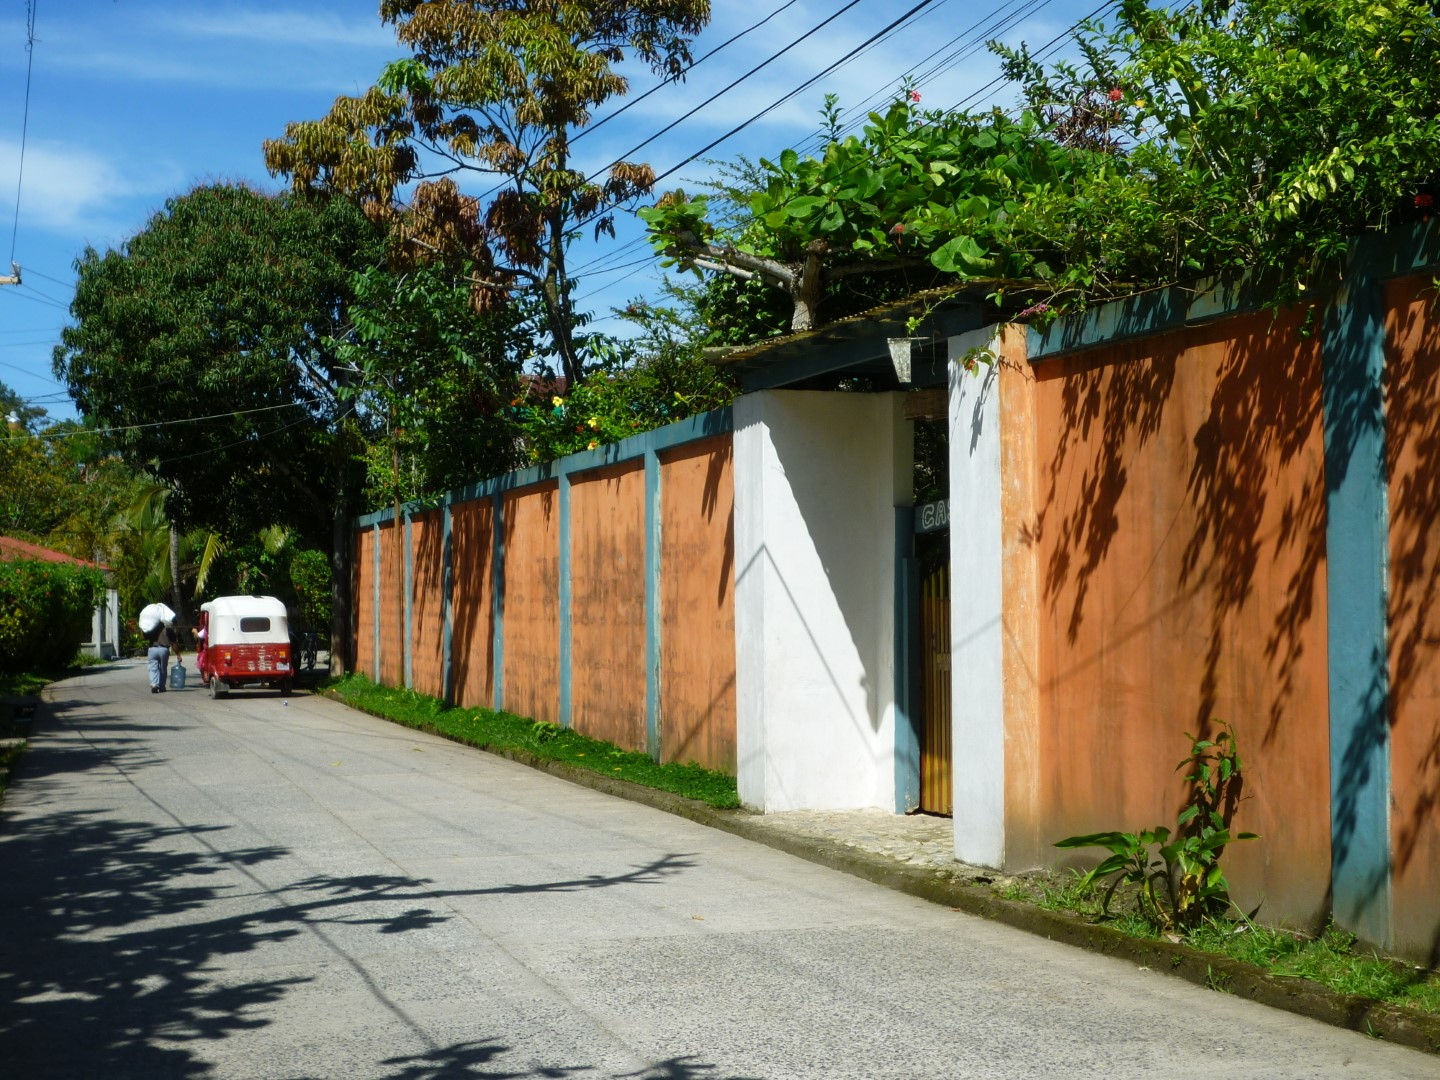 Wall alongside a quiet street in Livingston, Guatemala